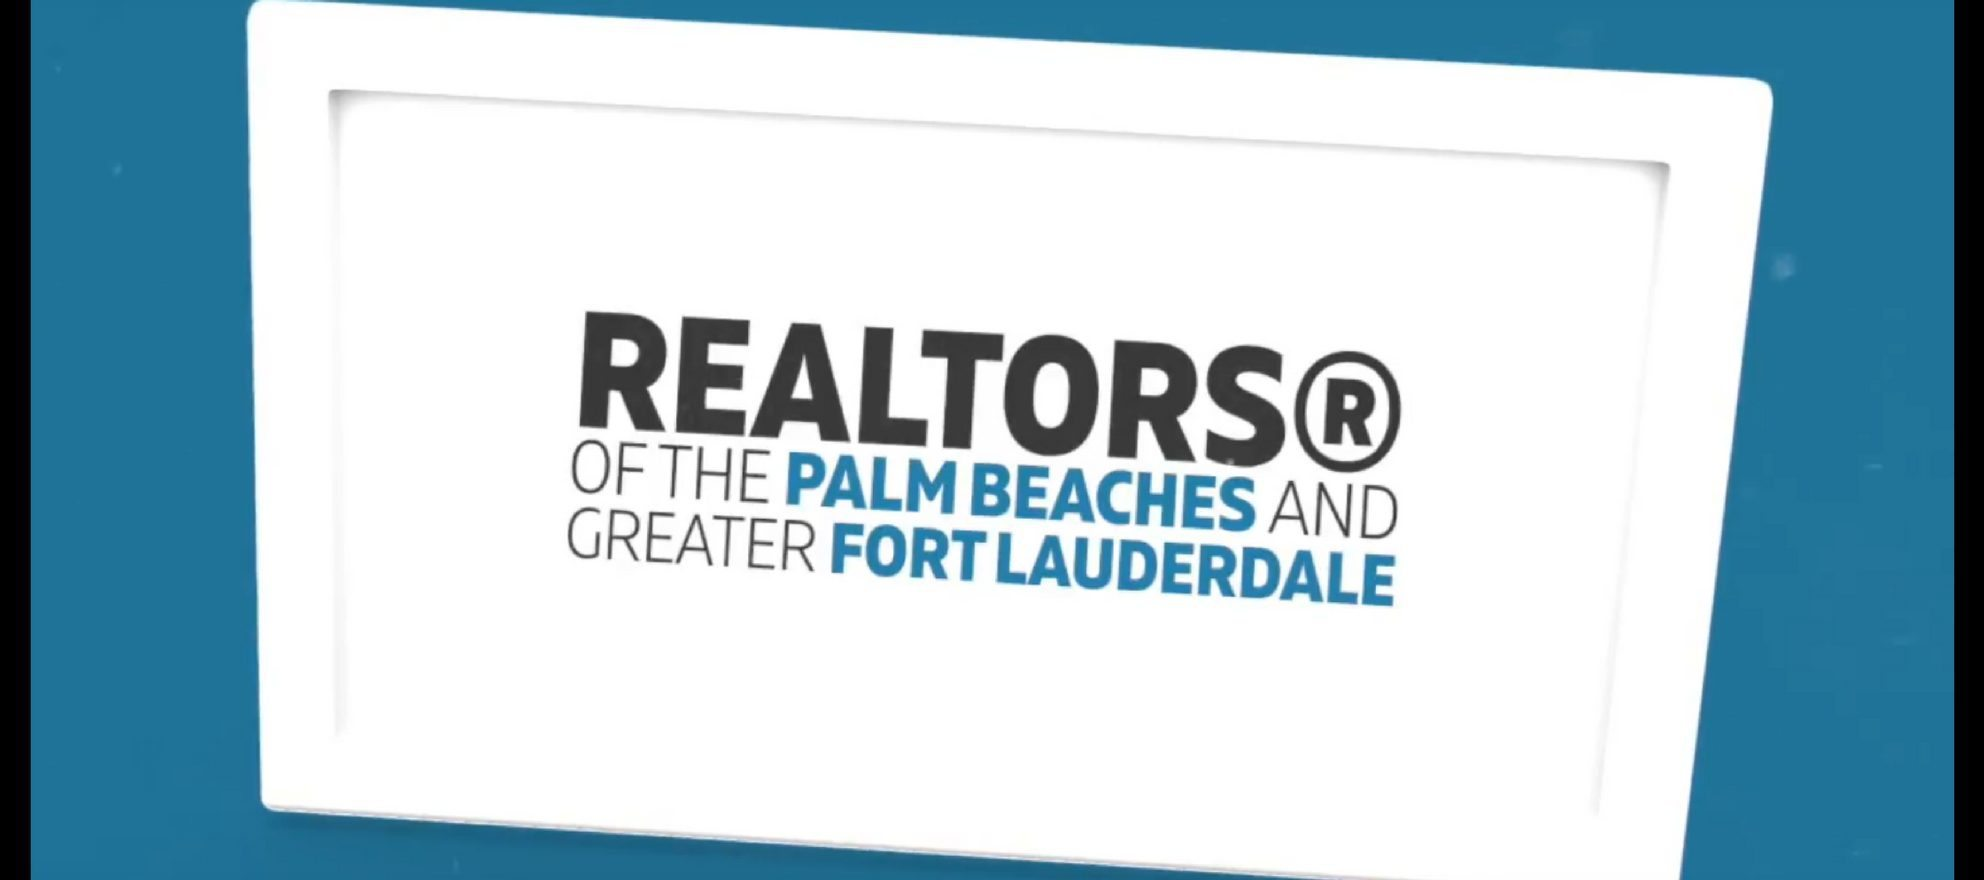 Realtors of the Palm Beaches and Greater Fort Lauderdale